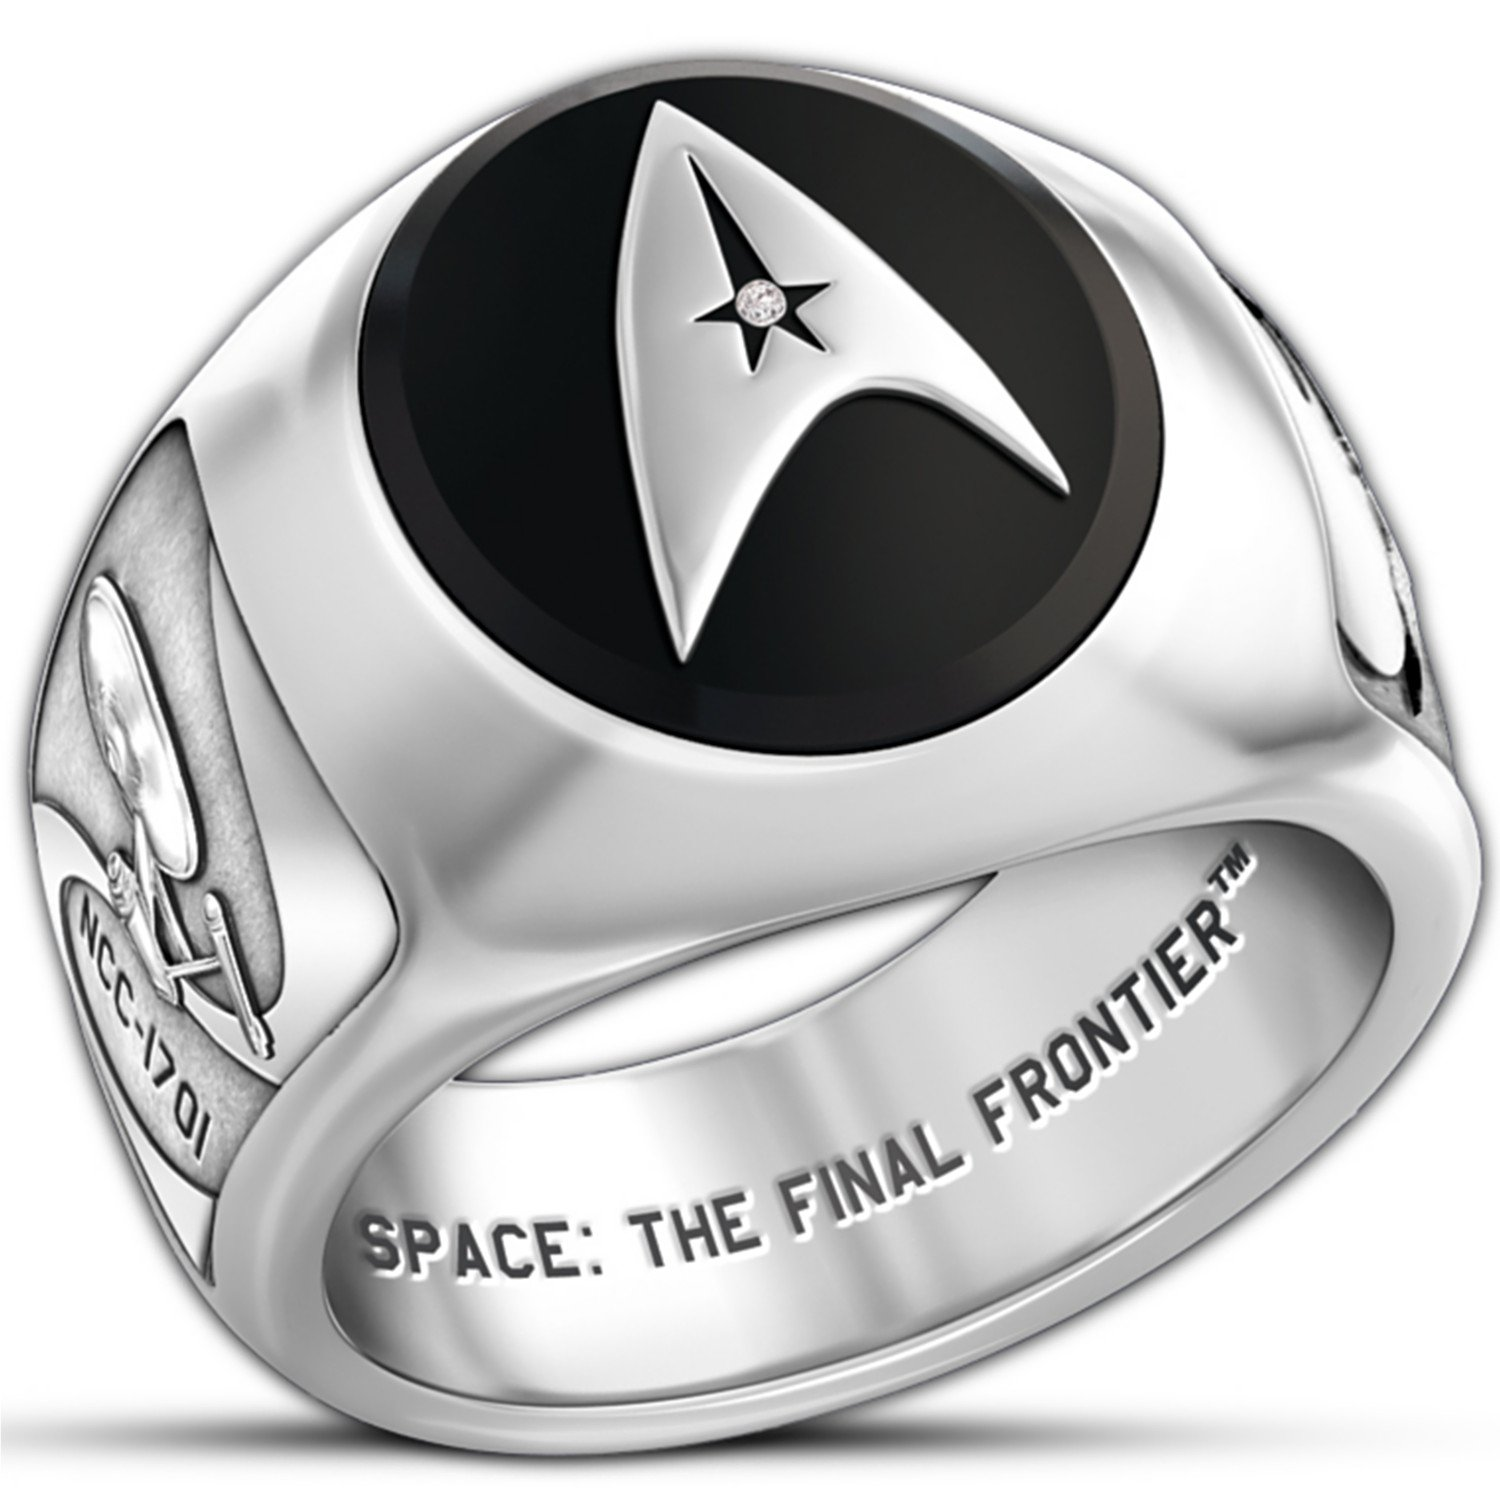 STAR TREK Collectors Ring by The Bradford ExchangeAmazoncom